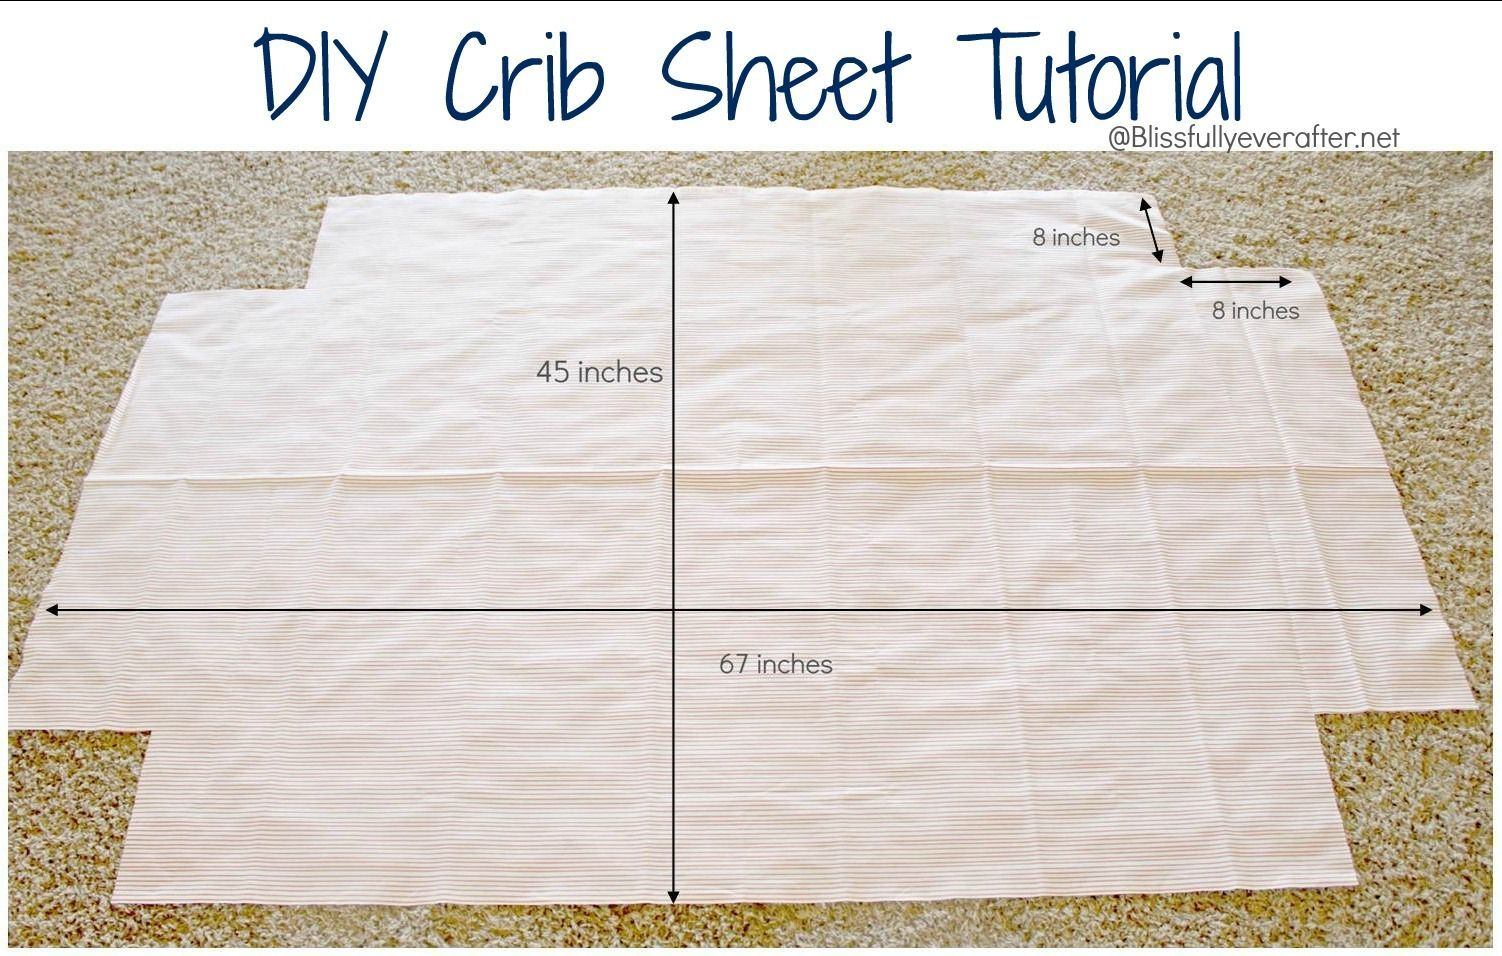 13 Alternatives How To Make A Crib Sheet You Need To Learn Diy Crib Baby Sewing Toddler Bed Sheets